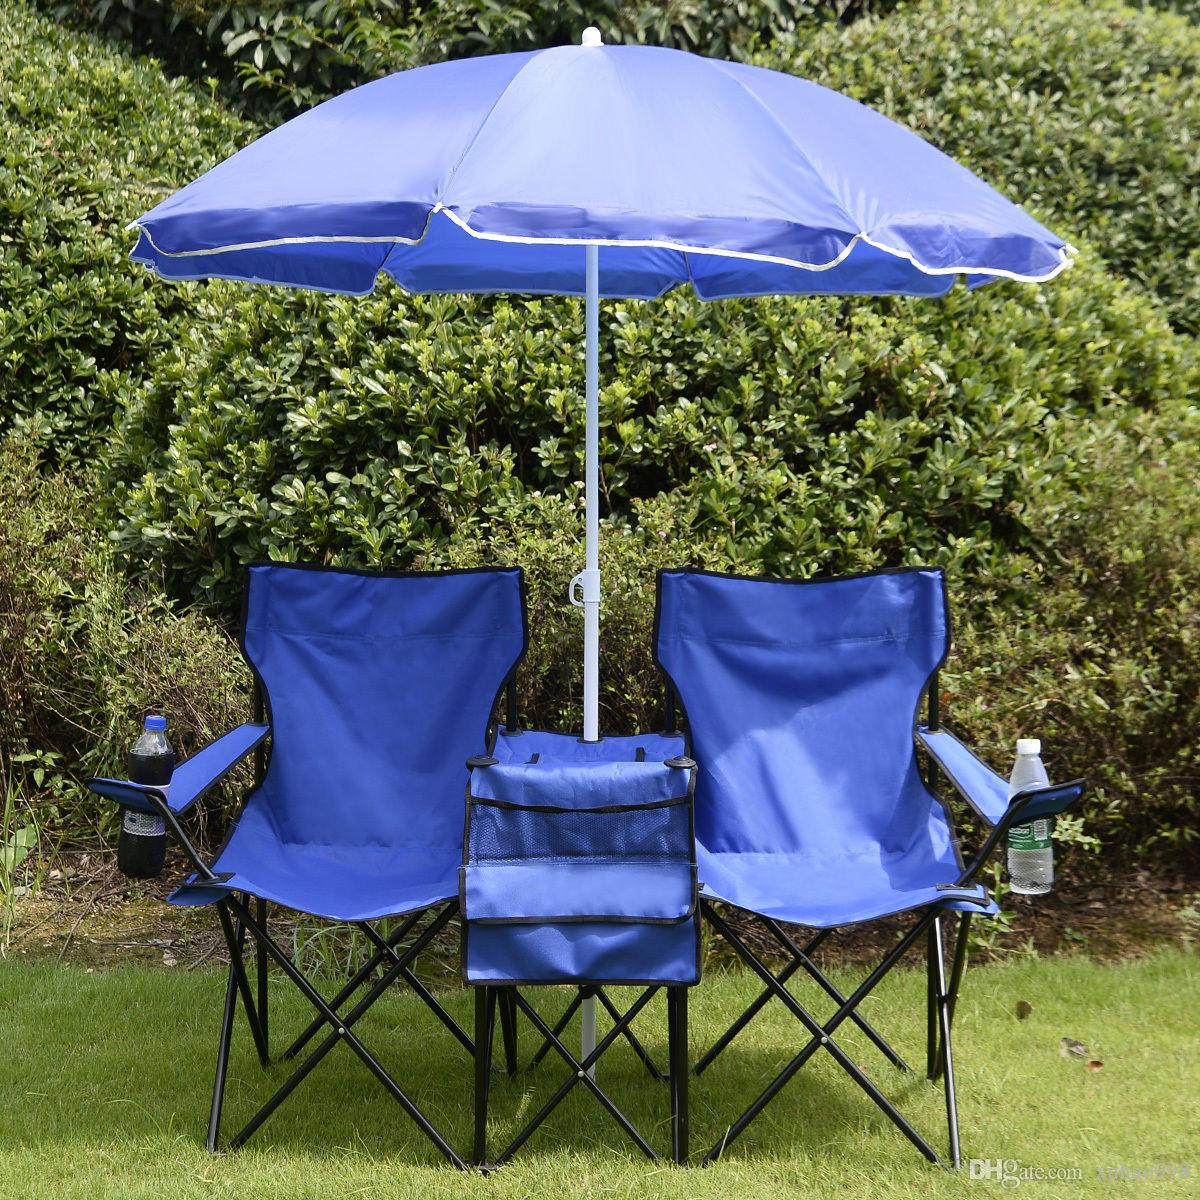 Chaise pliante double pique-nique portable W / Umbrella Table Cooler Plage Chaise de camping